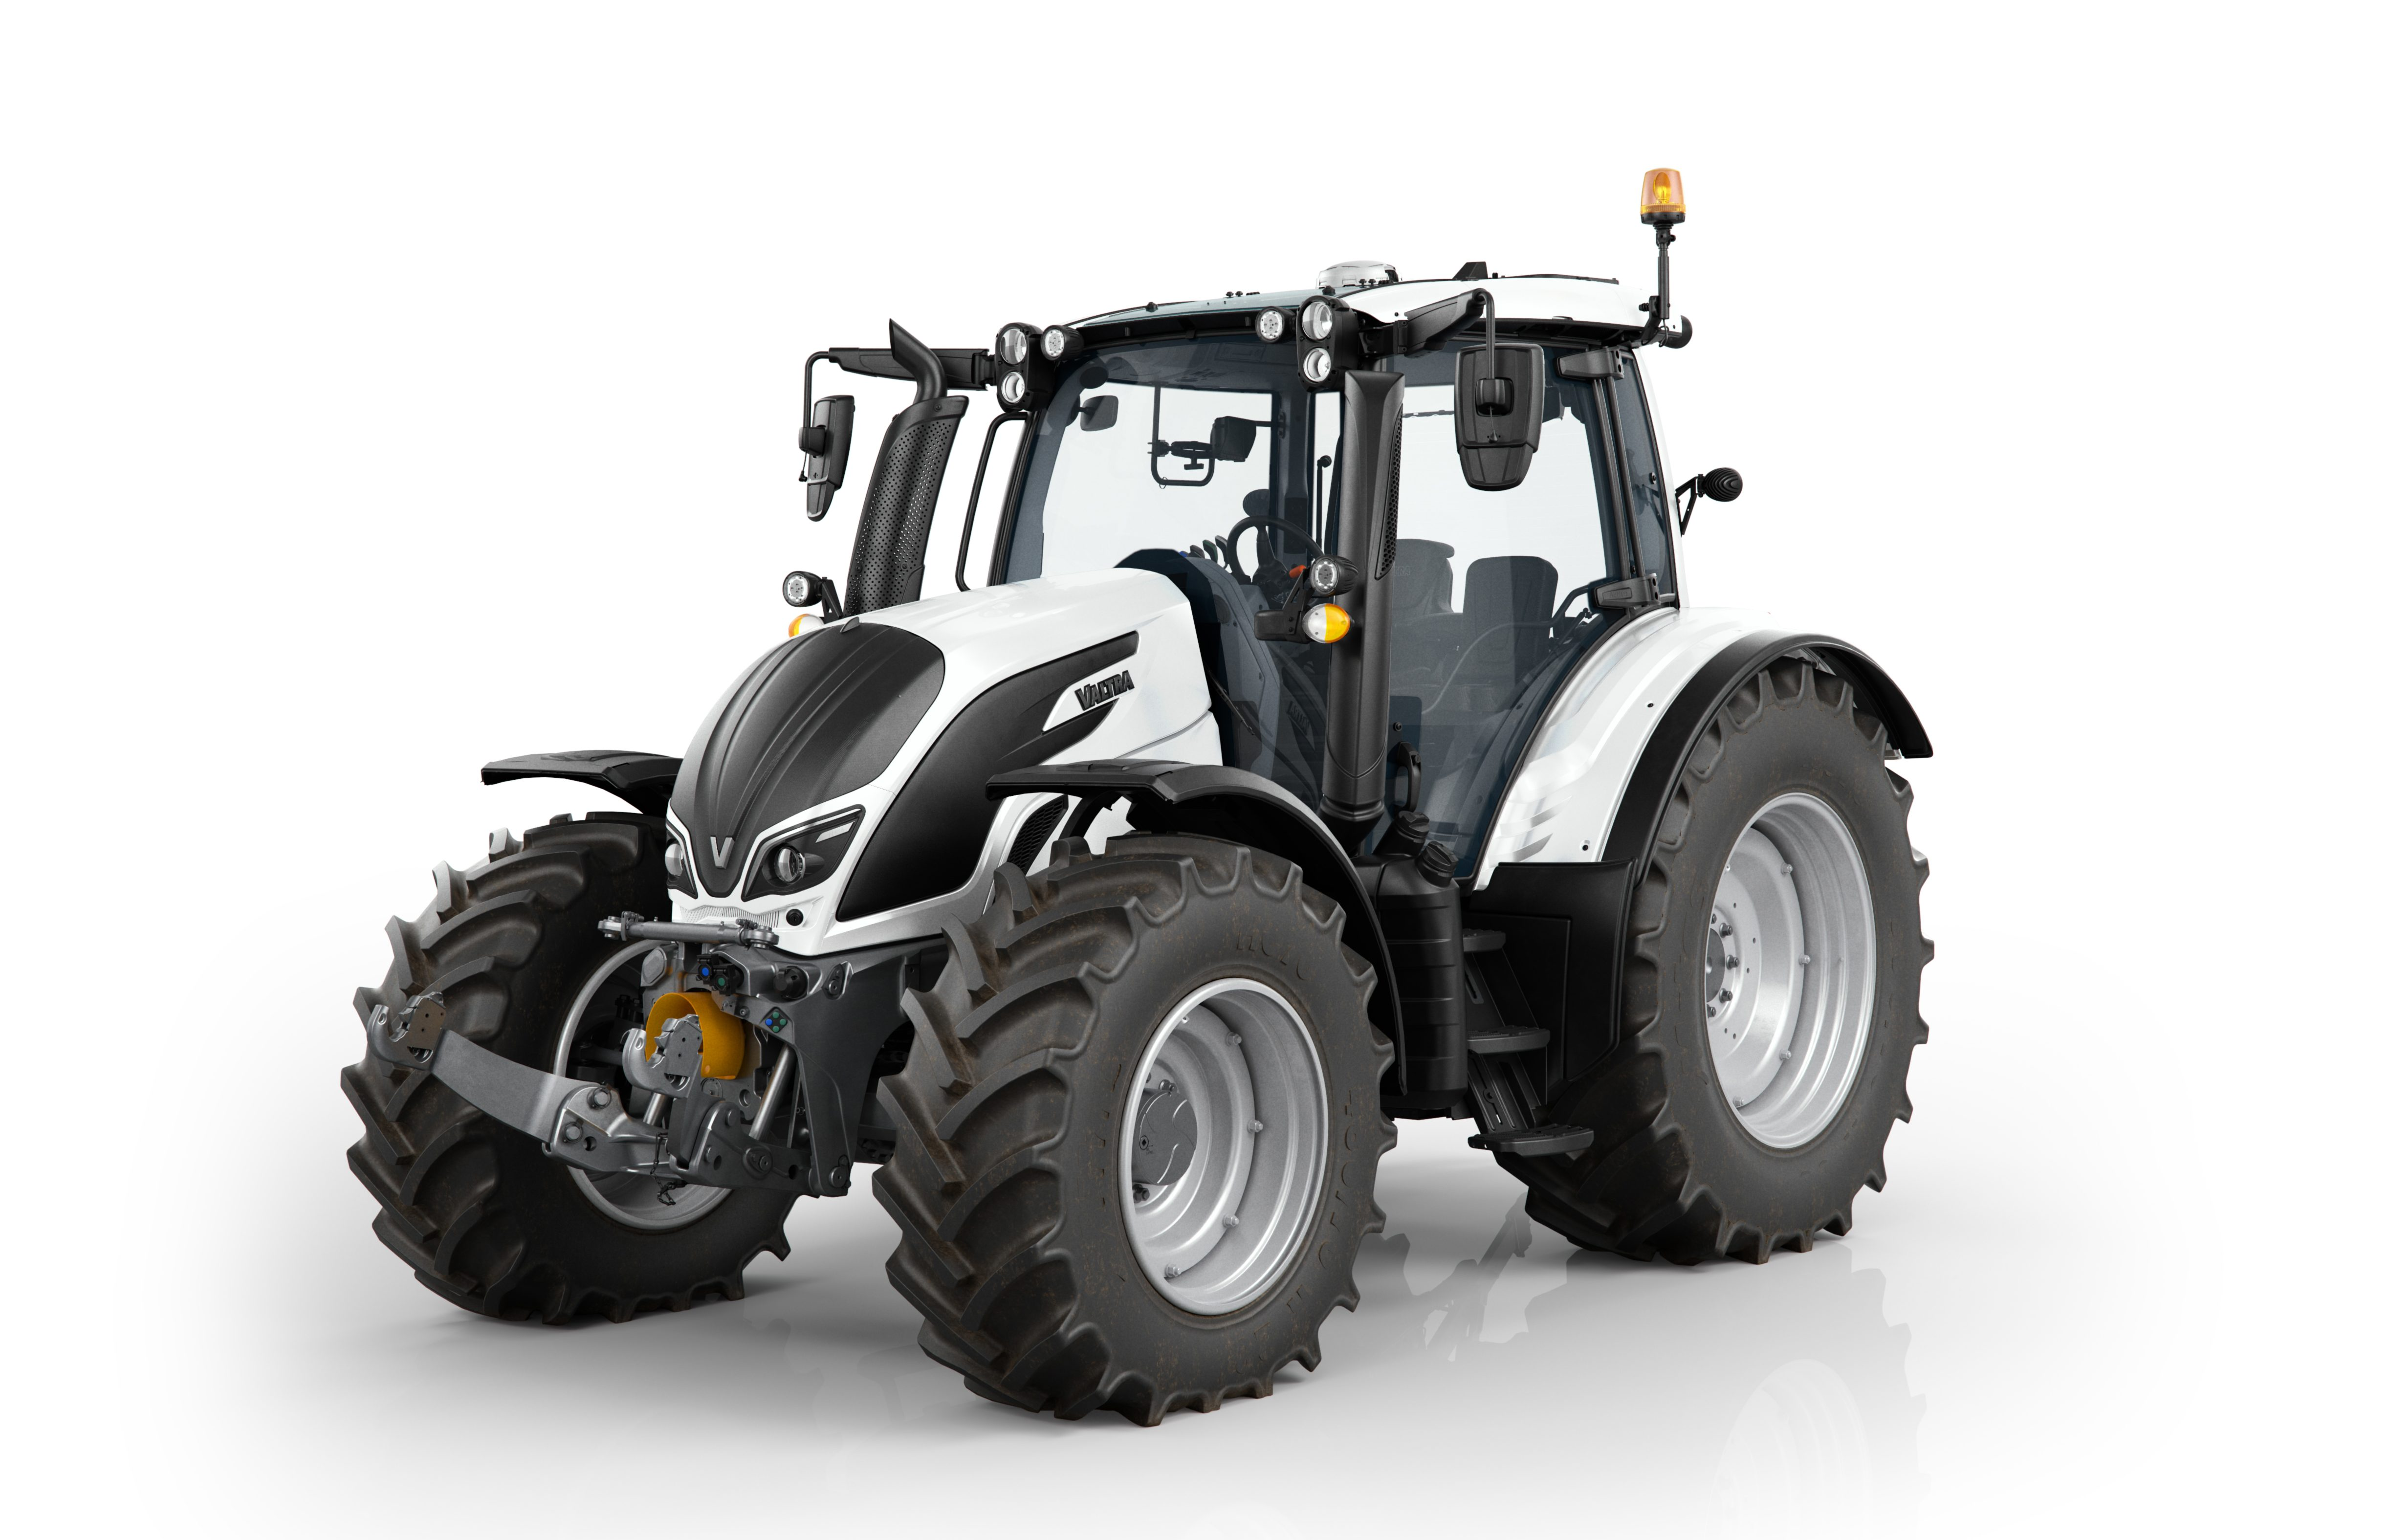 Tractor Transmission Fluid Suitable For Valtra Tractors